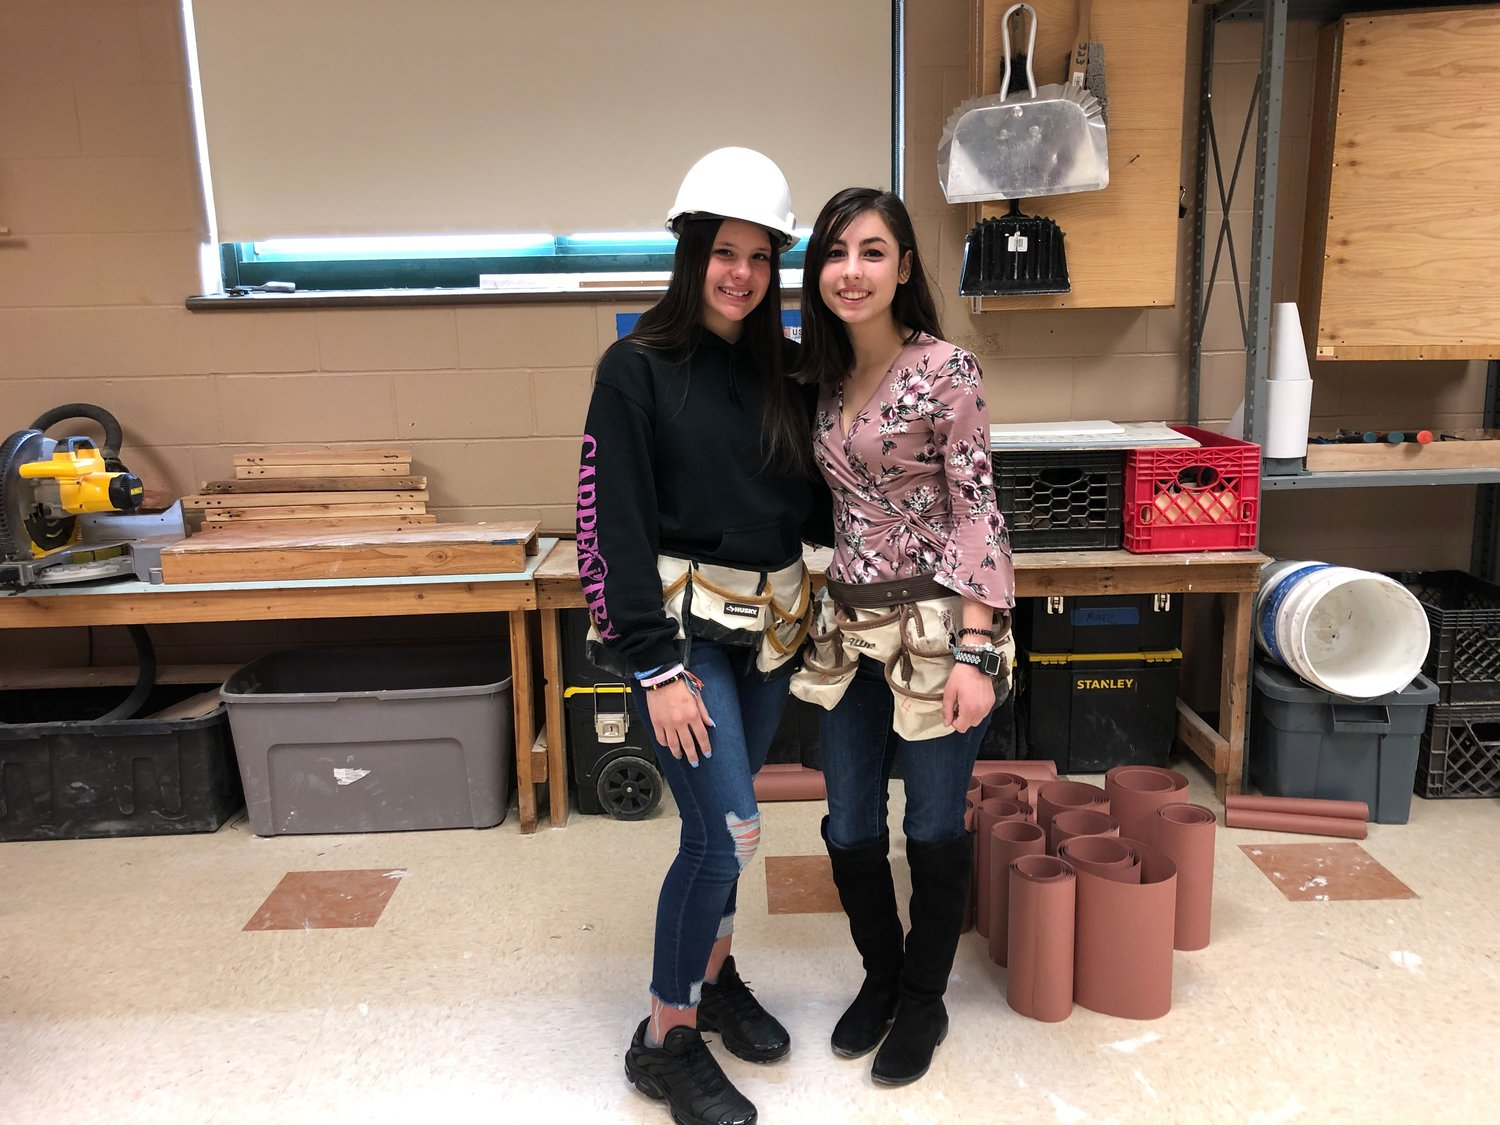 Juniors Lauren Chavez (left) and Giovanna Capitello (right) are two females among 30 males enrolled in this year's carpentry program.